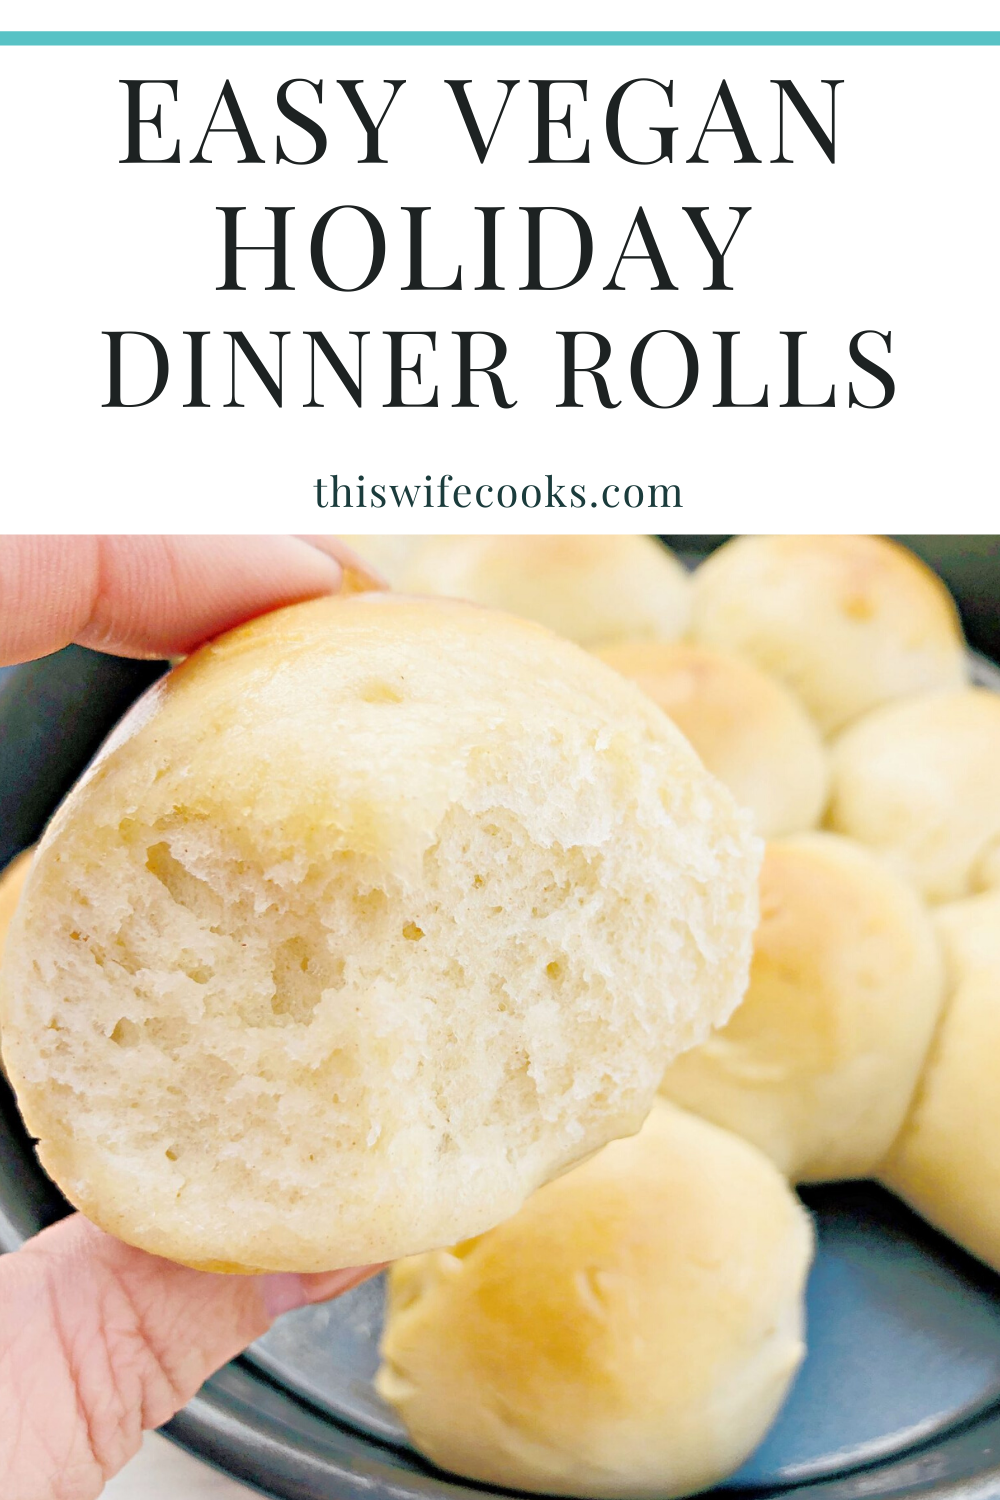 Easy Vegan Pull-Apart Holiday Dinner Rolls - The classic dinner rolls we all know and love! Impress your guests with soft and fluffy homemade dinner rolls! Perfect for the holiday dinner table! | thiswifecooks.com #thanksgivingbreadrollrecipe #yeastrolls #dairyfreedinnerrolls #veganthanksgivingrecipes #thiswifecooksrecipes via @thiswifecooks